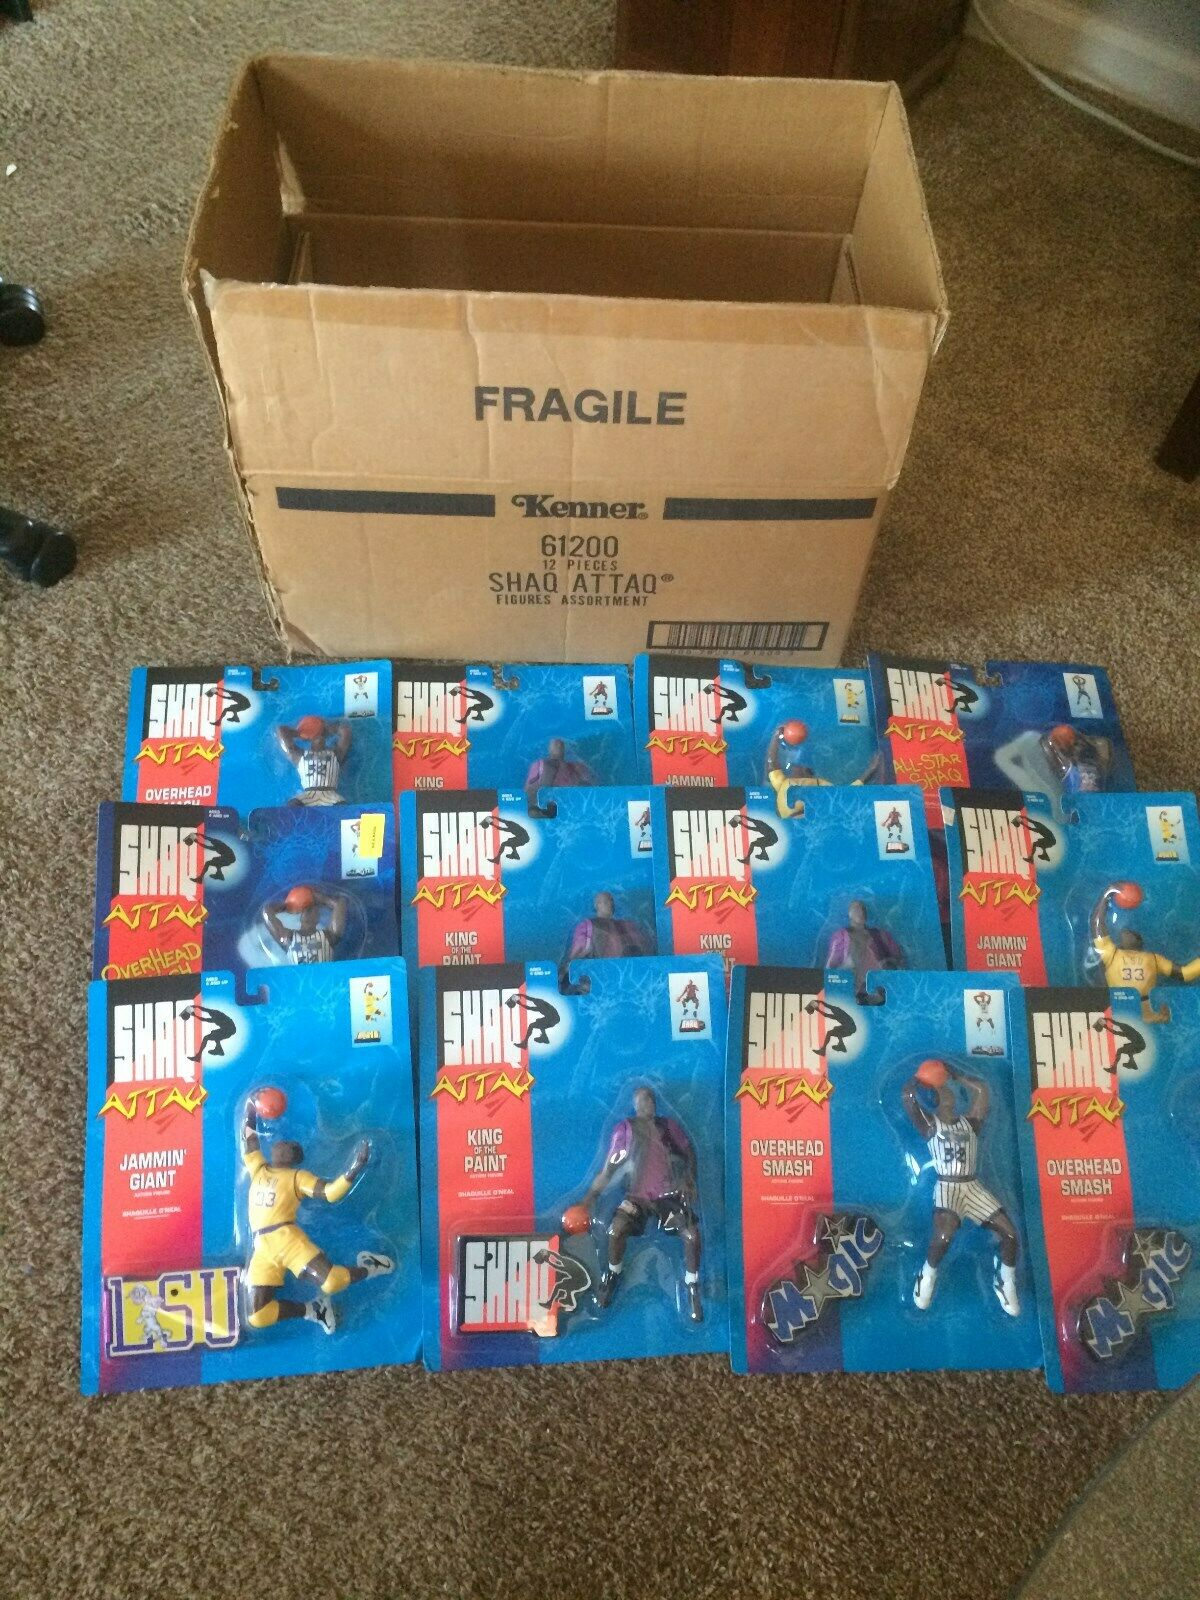 1 (12) Case Case Case of 1993 Shaq Attaq NBA  Shaquille O'neal Action Figure From Kenner, 5214fe